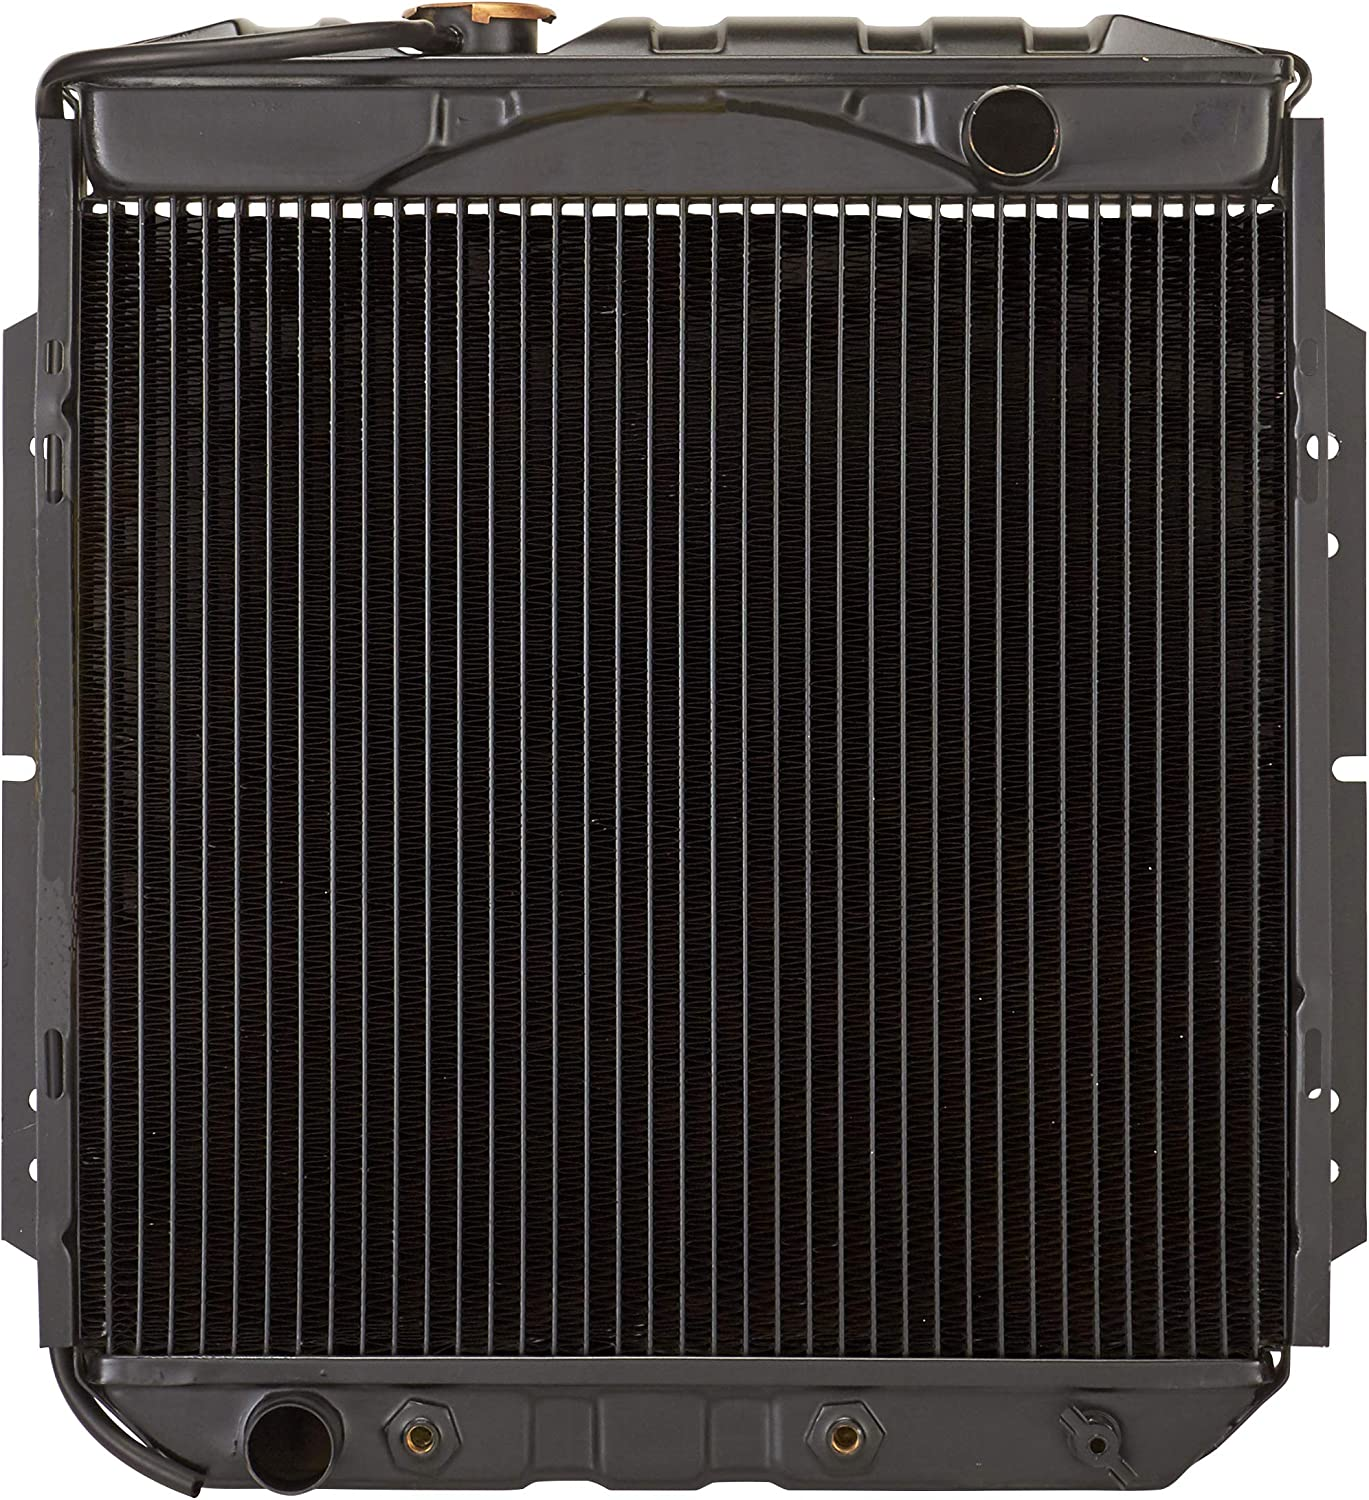 Spectra Premium CU1463 Complete Radiator for Ford Falcon